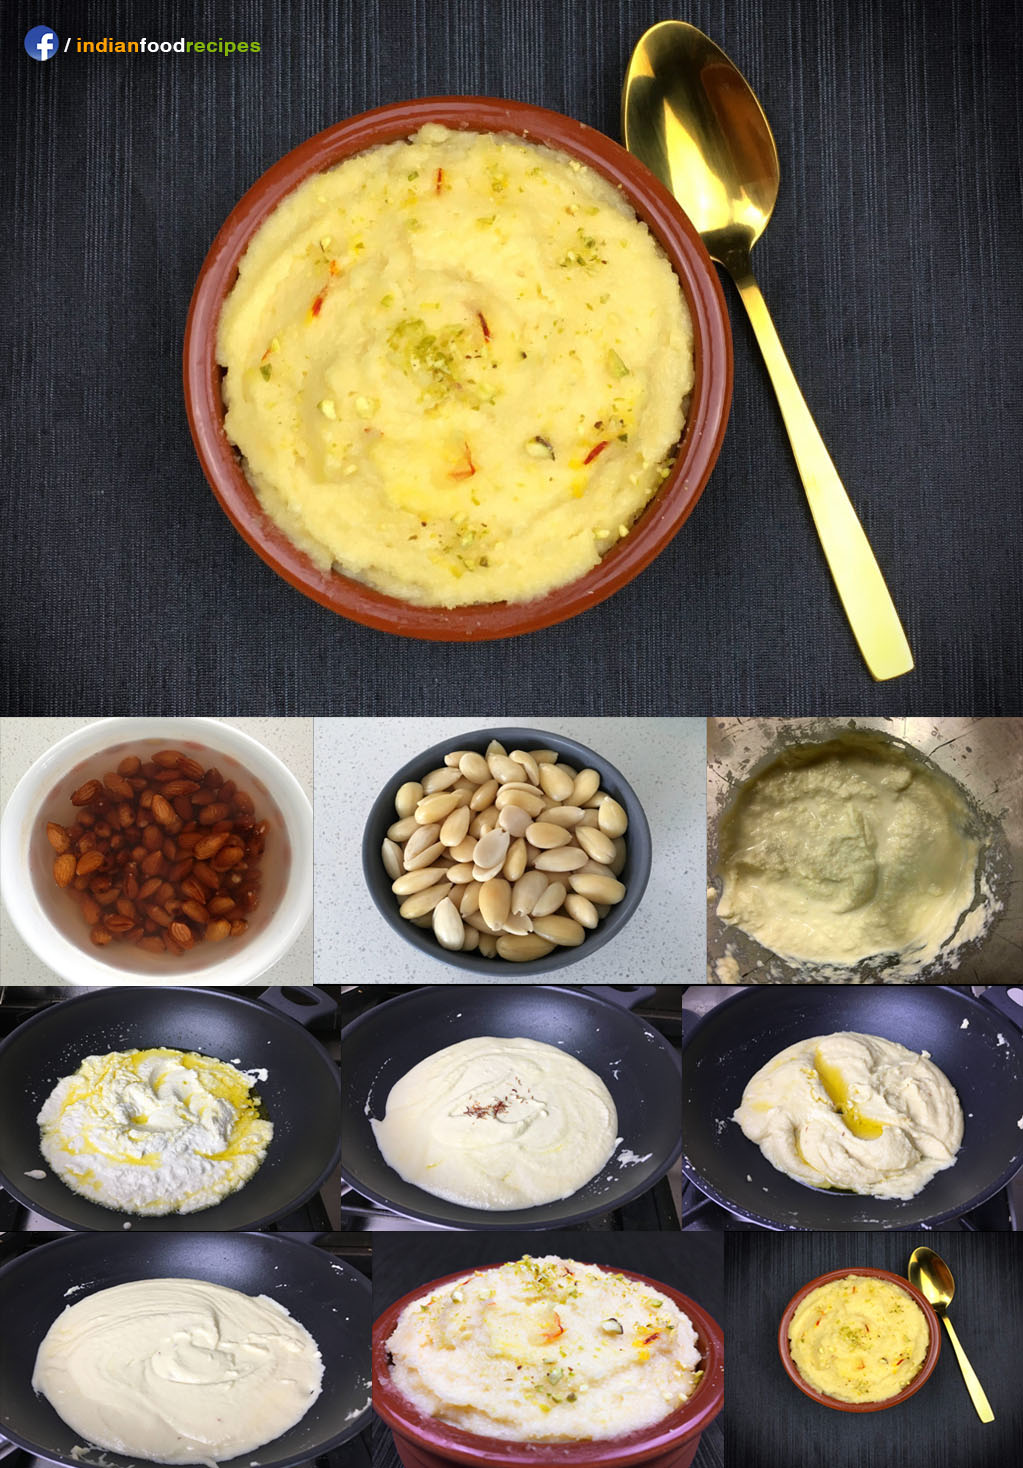 Badam Halwa recipes step by step